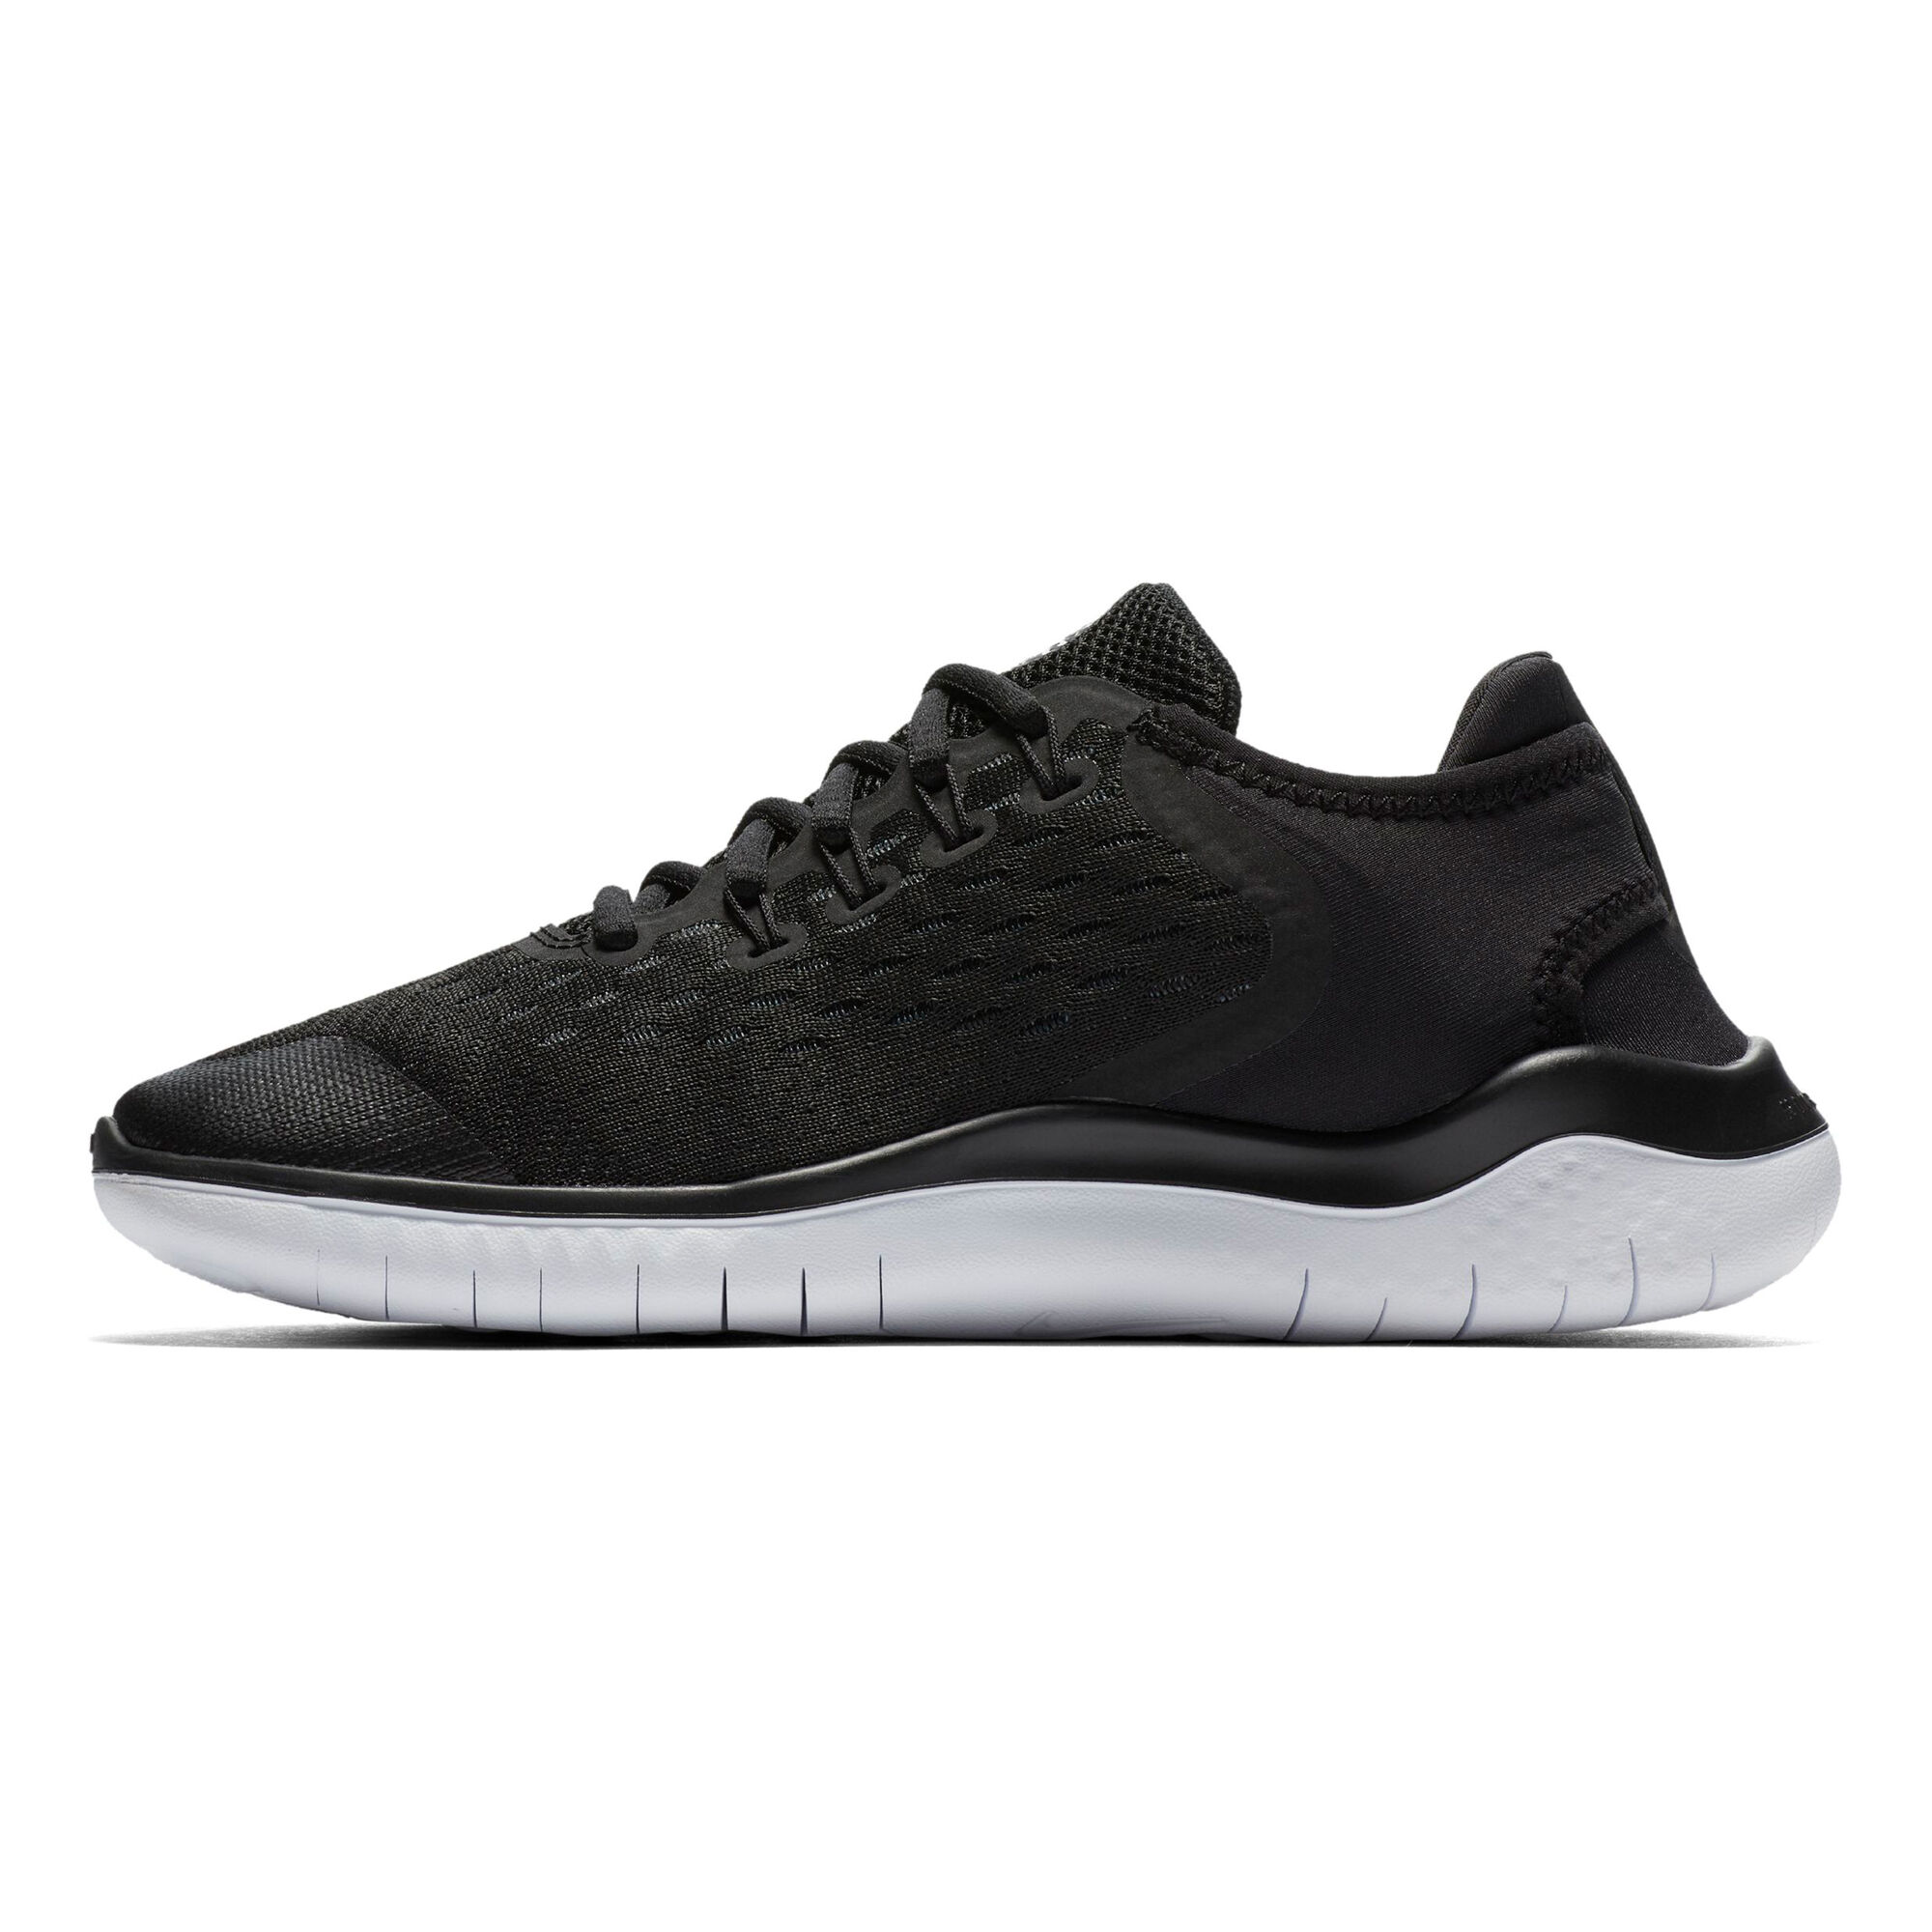 hot sale online 191e8 6675e buy Nike Free Run 2018 Natural Running Shoe Kids - Black ...